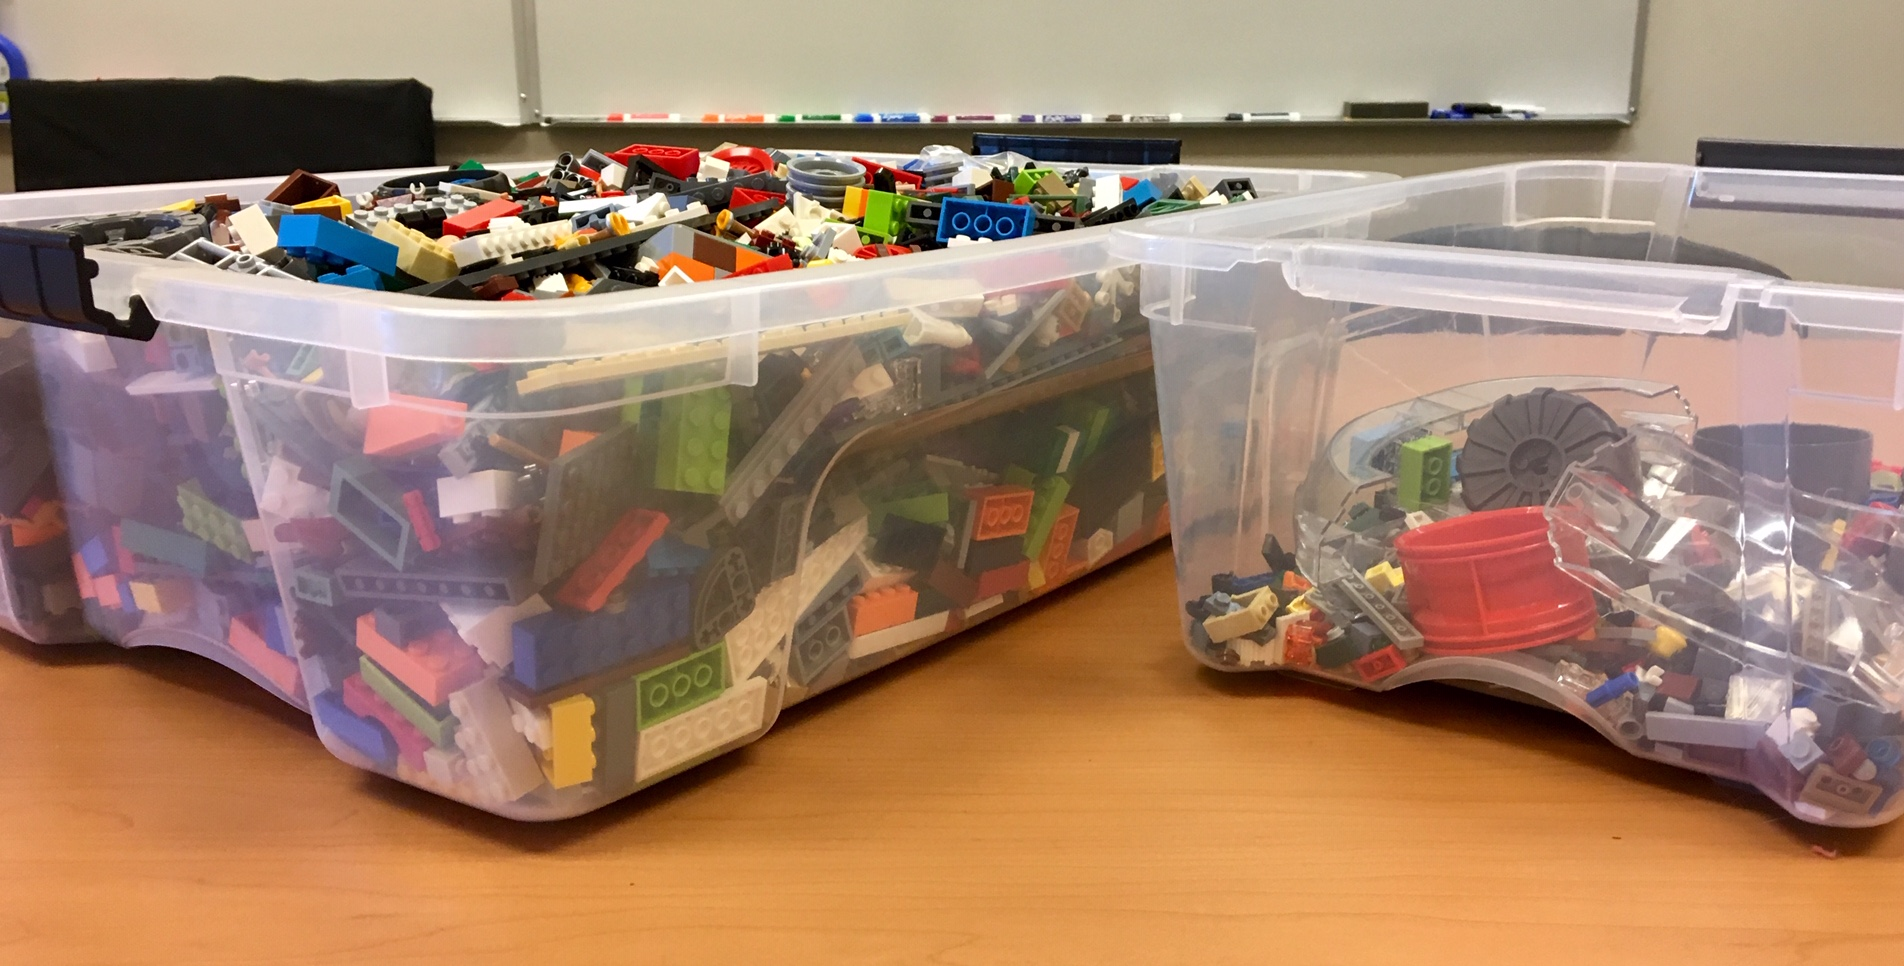 Lego™ Boxes (side view)